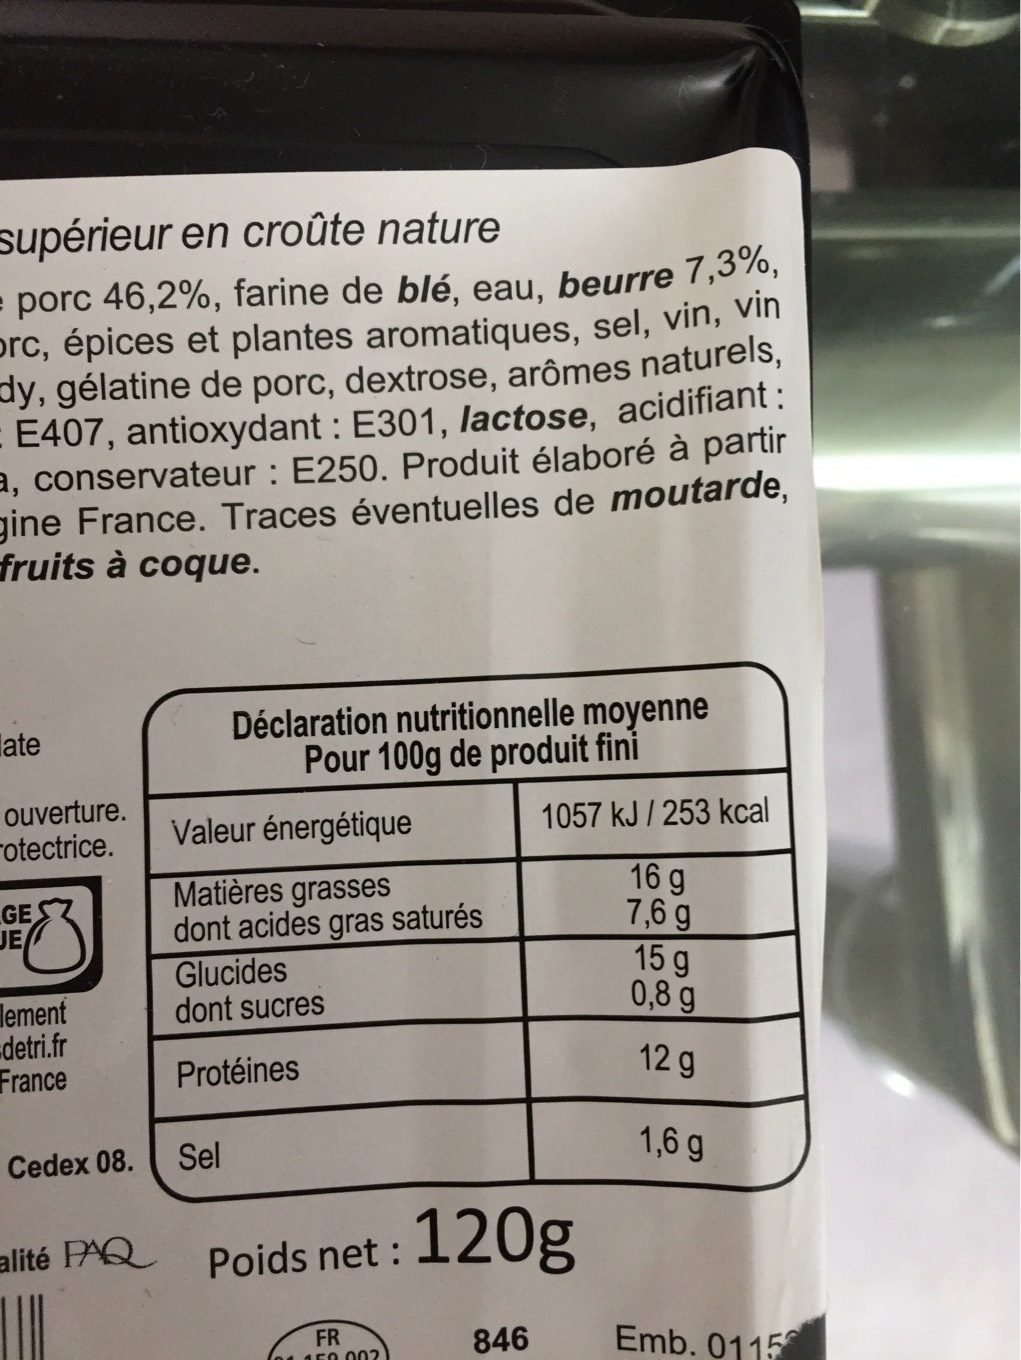 Pâté en croute - Nutrition facts - fr